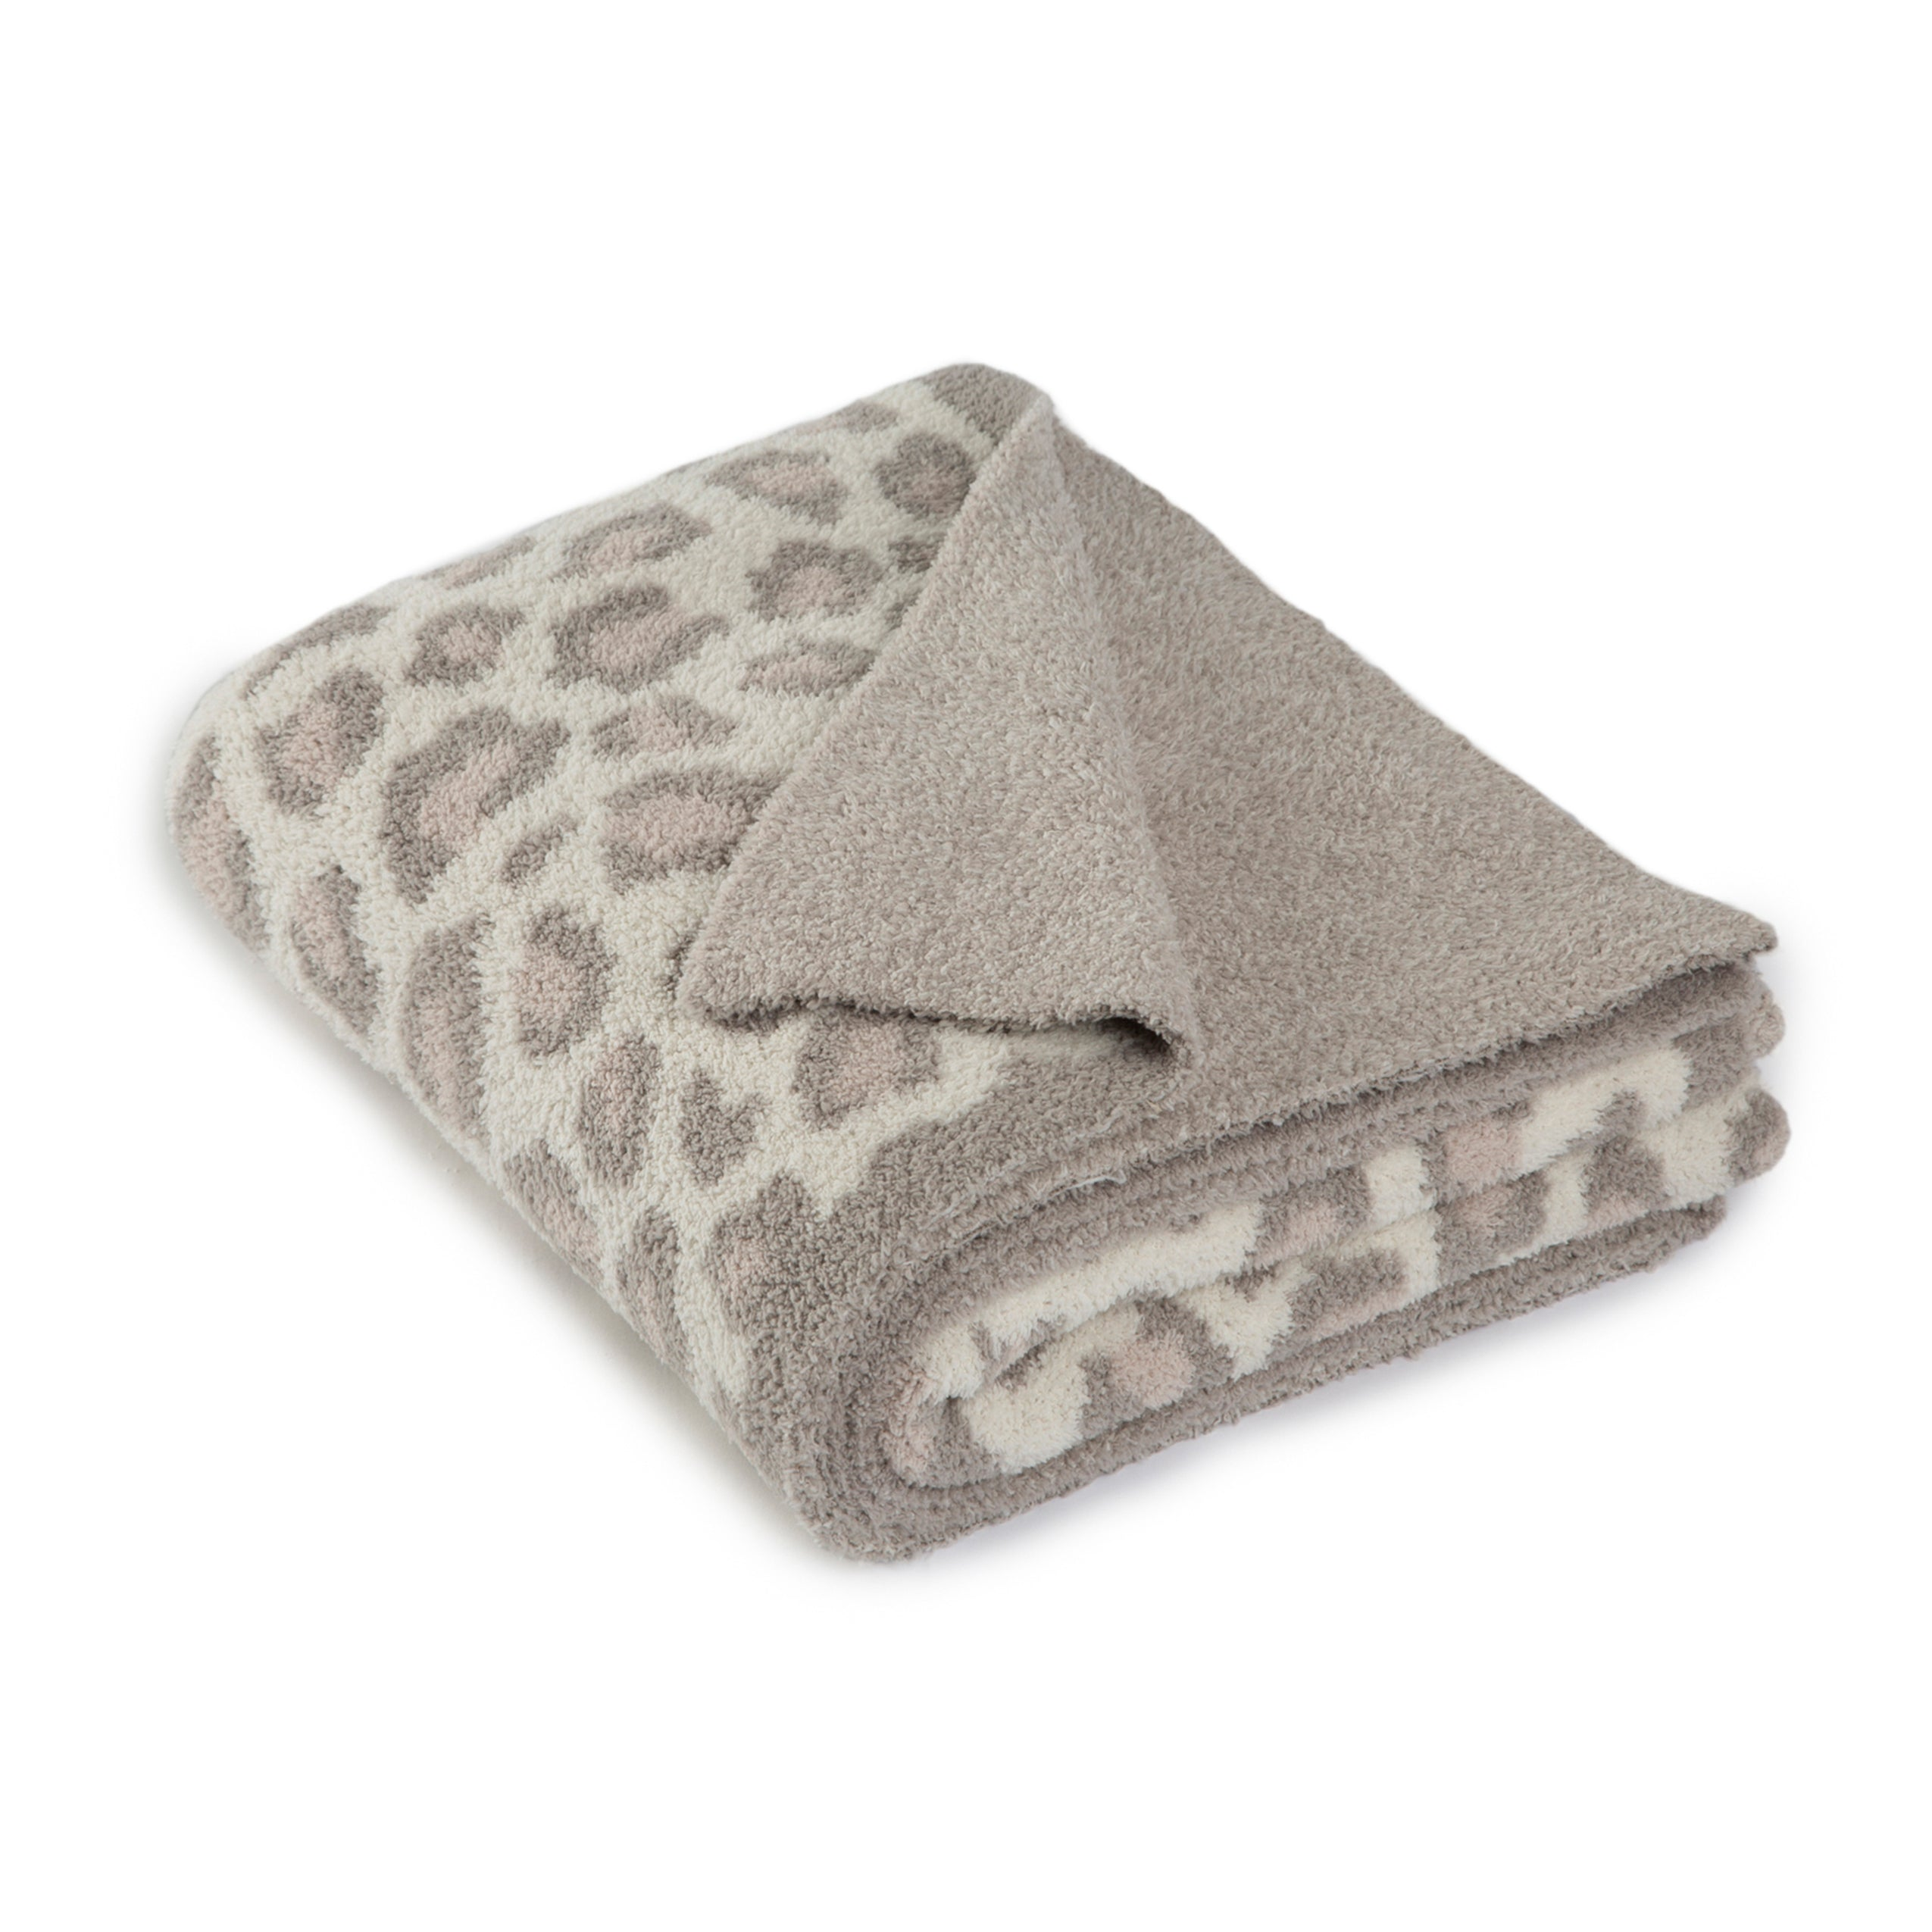 CozyChic Safari Blanket